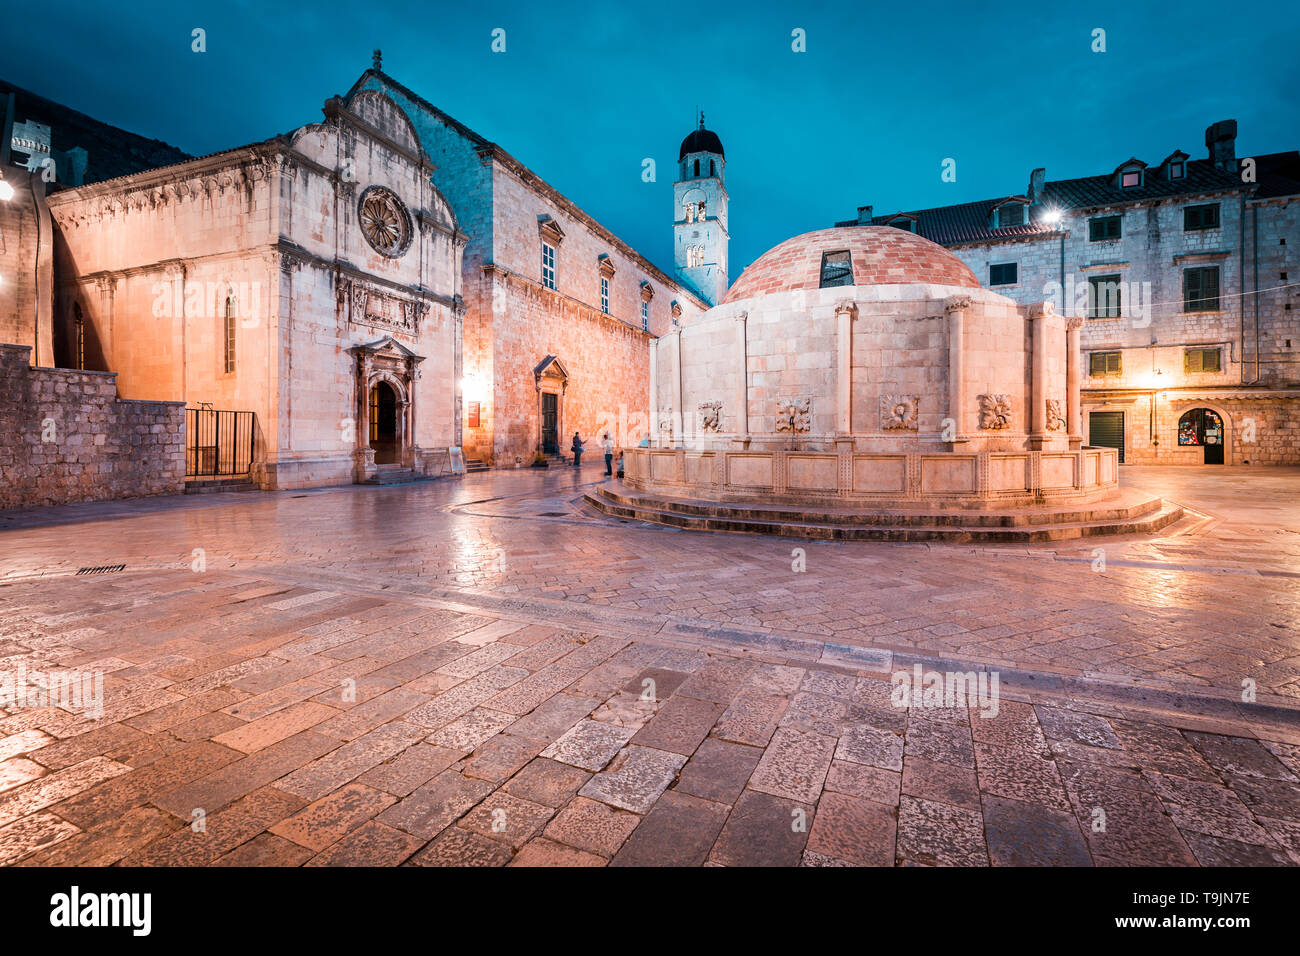 Beautiful twilight view of the historic town of Dubrovnik with famous Onofrio's fountain at dusk, Dalmatia, Croatia - Stock Image